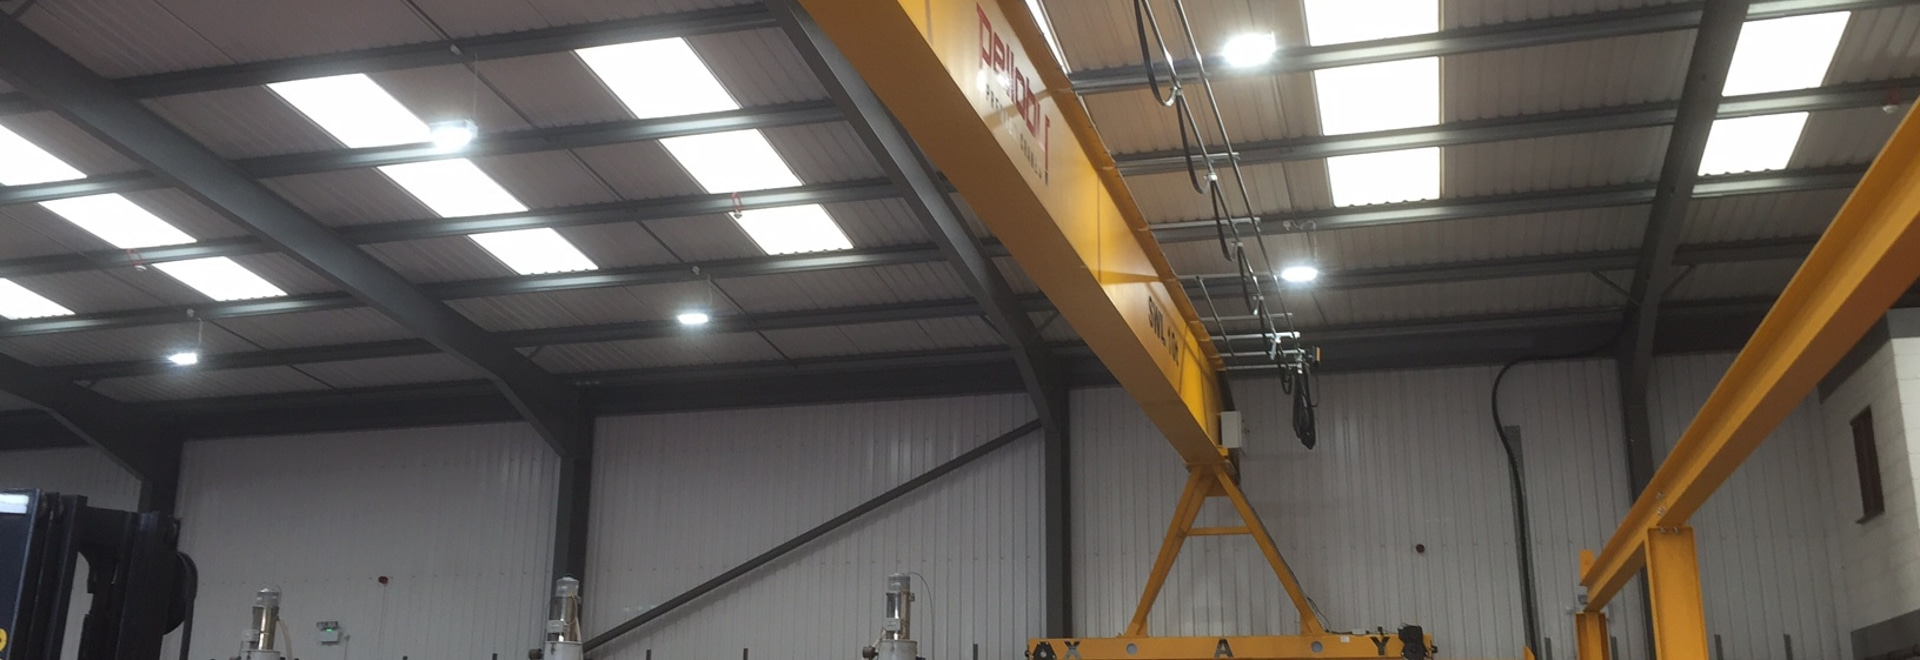 The new crane system at injection moulding specialist Goodfish features a 10-tonne capacity Eurobloc VM3 electric wire-rope hoist from Verlinde